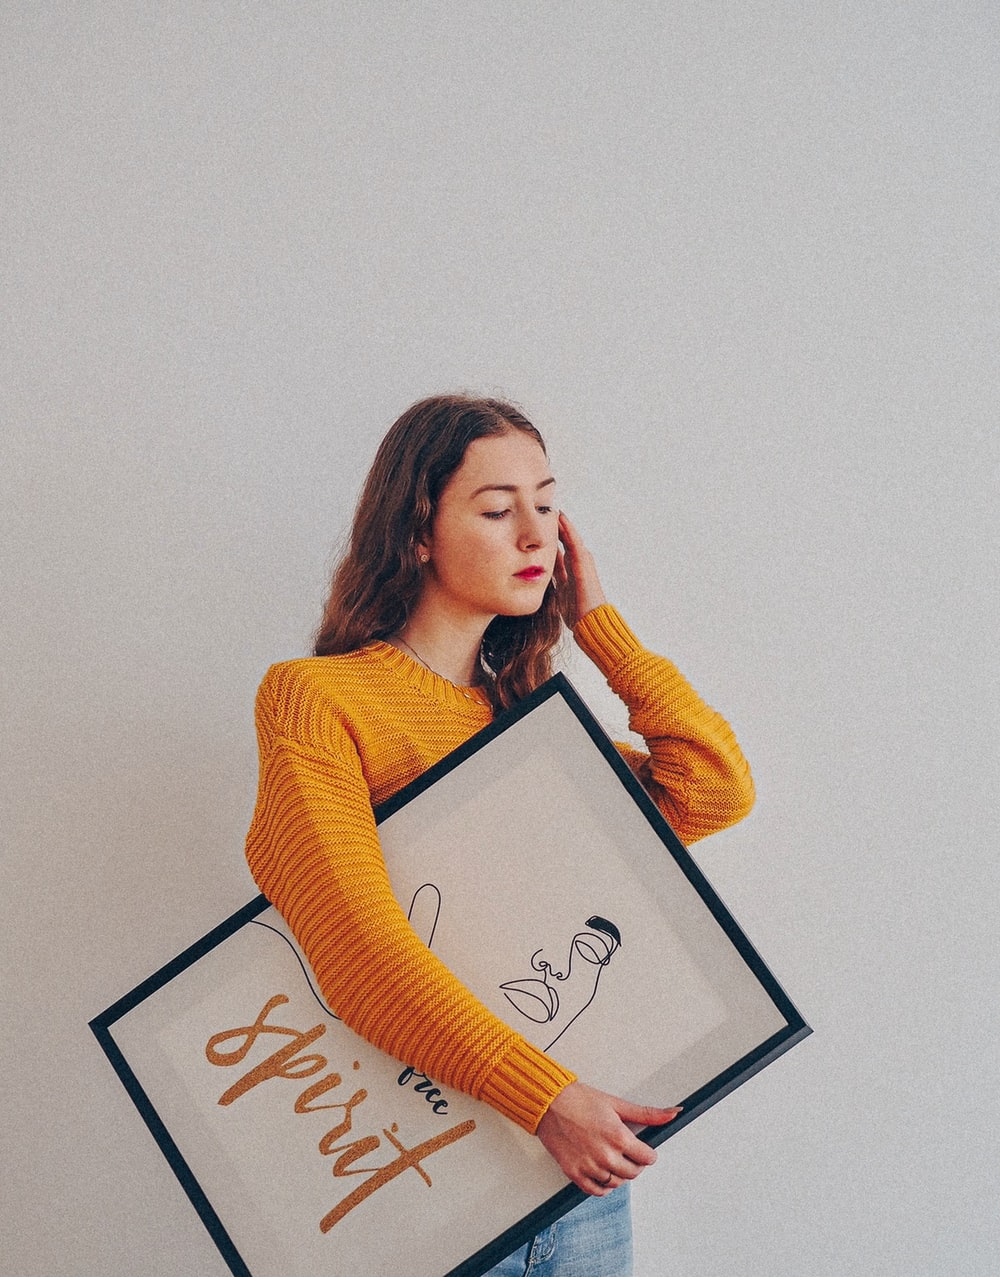 woman in yellow sweater holding black framed photo